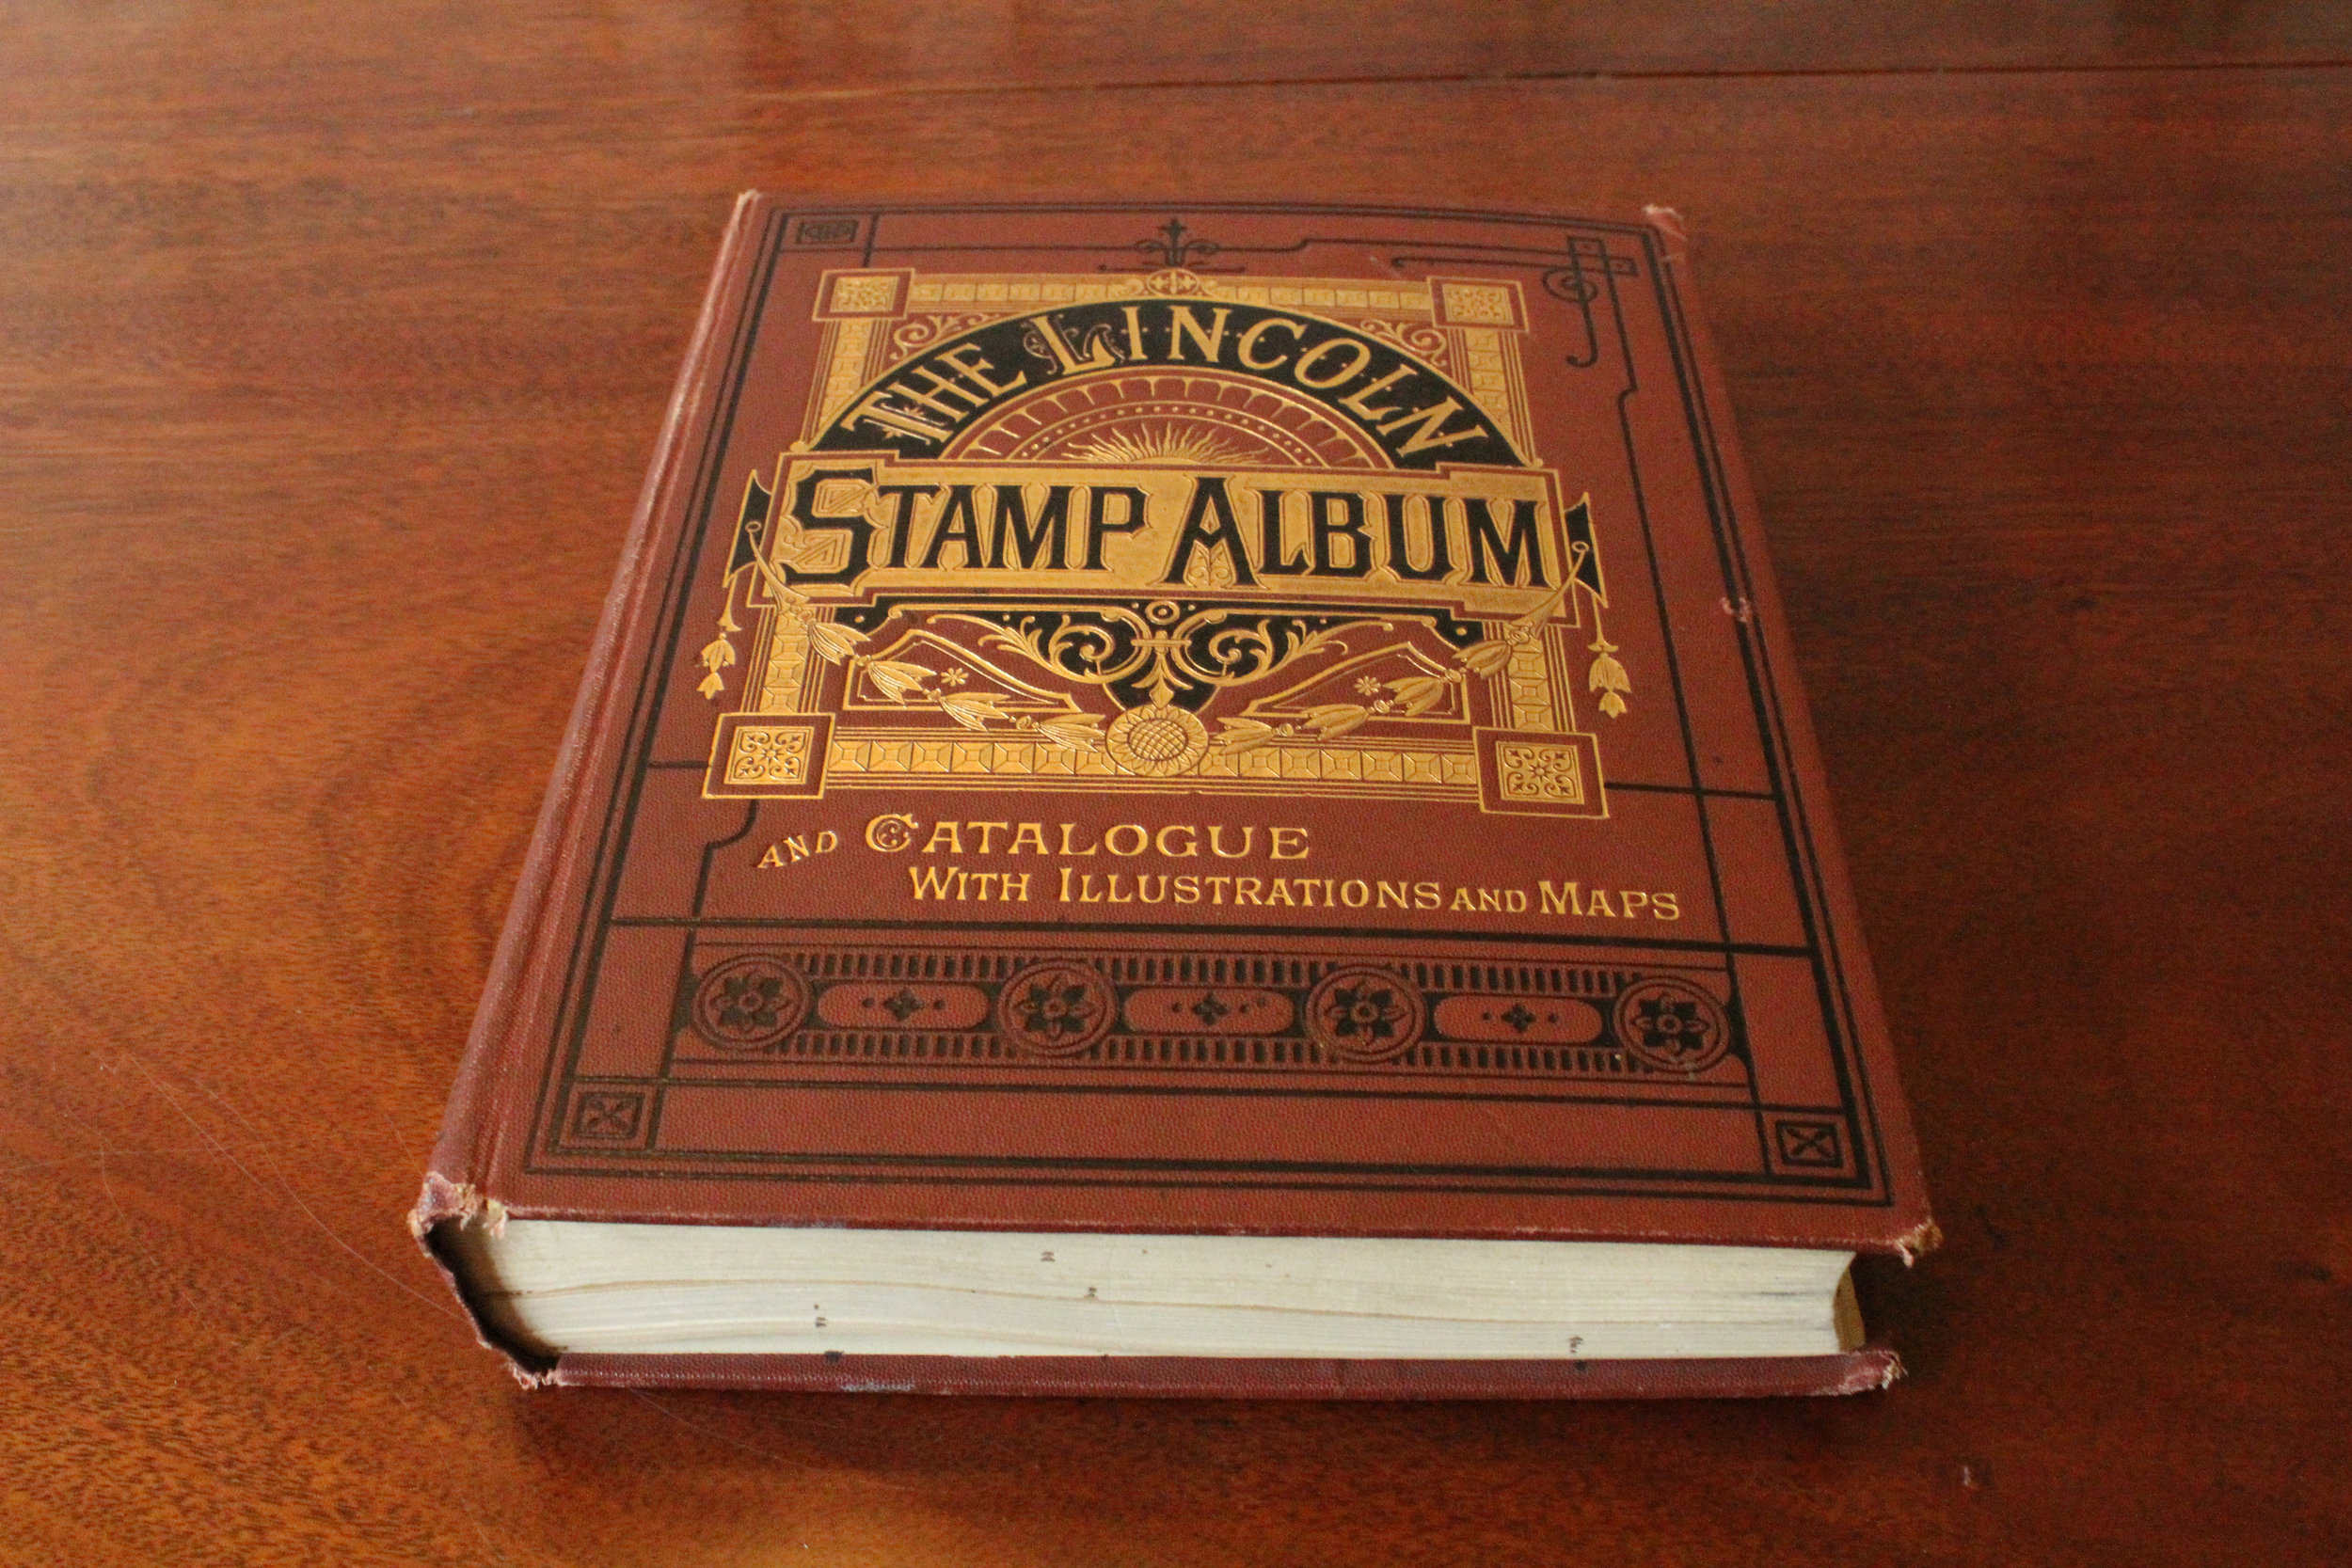 Jack Macdonald's Stamp Collection    Medium adoptable, $100 donation   This book originally belonged to Jack Macdonald, we know this because he had signed his name inside the front cover. Following Jack's death in 1905, Edgar Jordan Tarr (a lawyer at the Macdonald, Haggart, & Whitlaw firm) gifted the book back to the Macdonald family since he did not collect stamps.